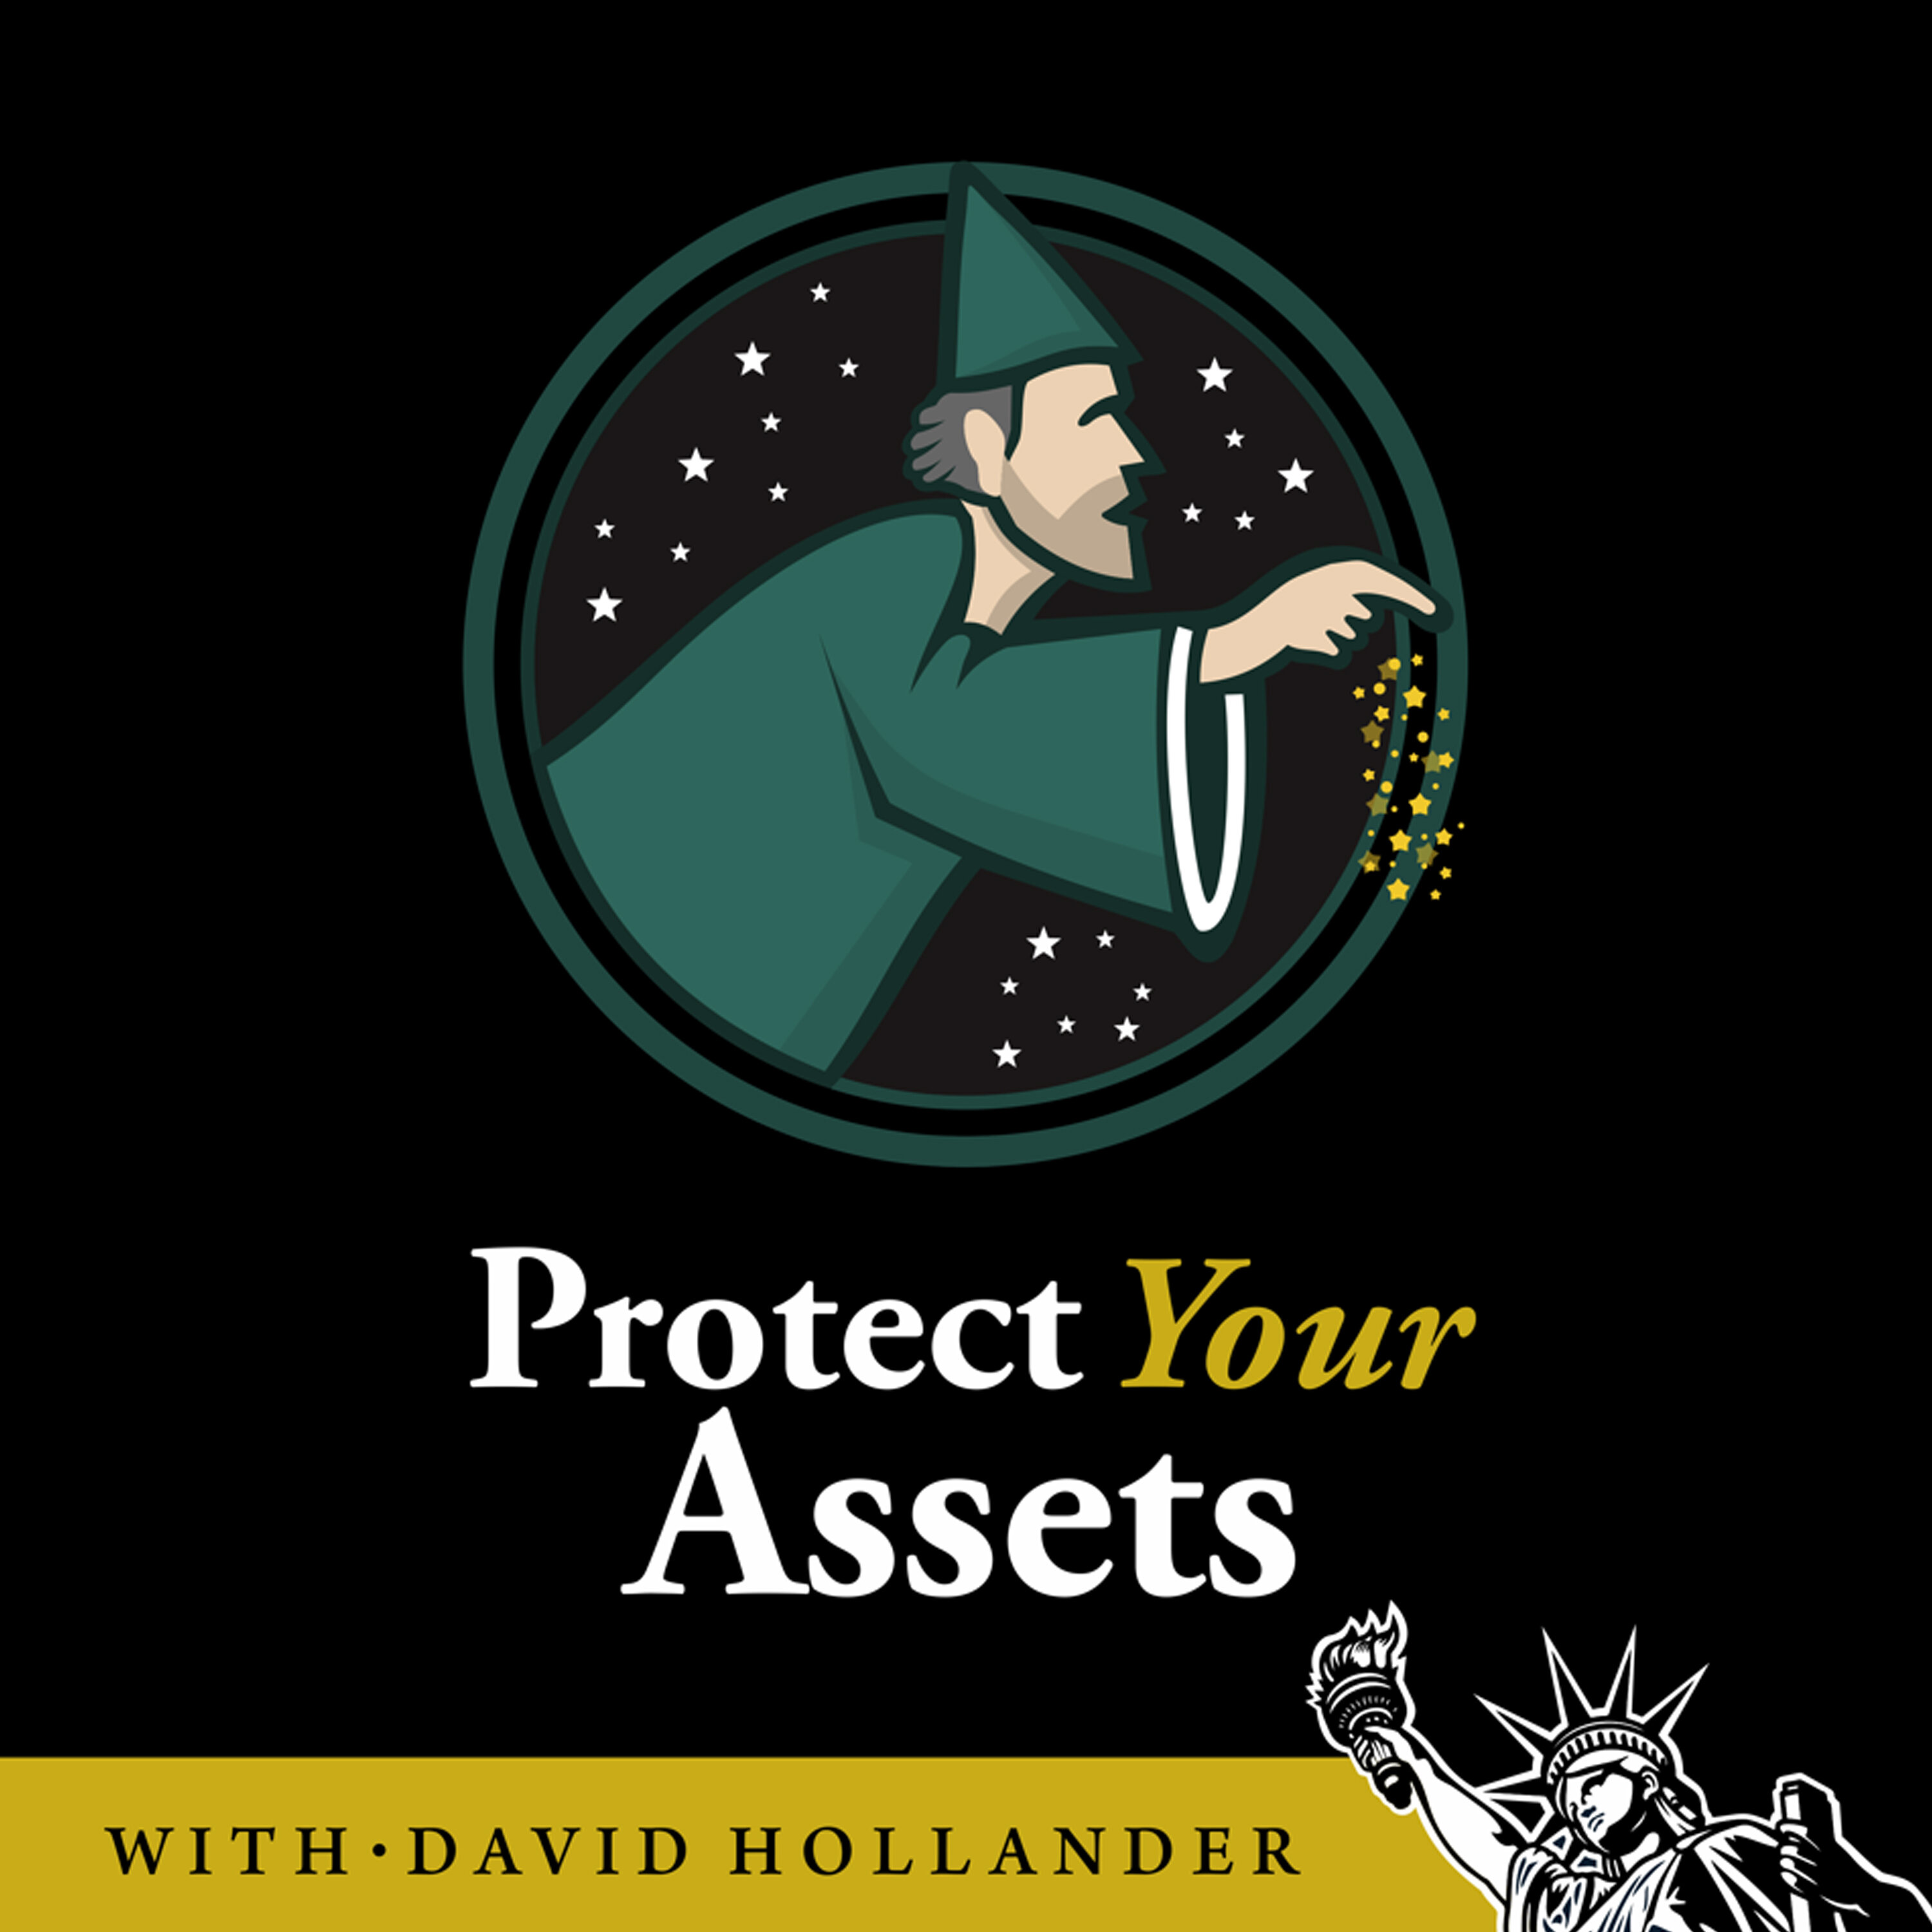 Protect Your Assets podcast show image